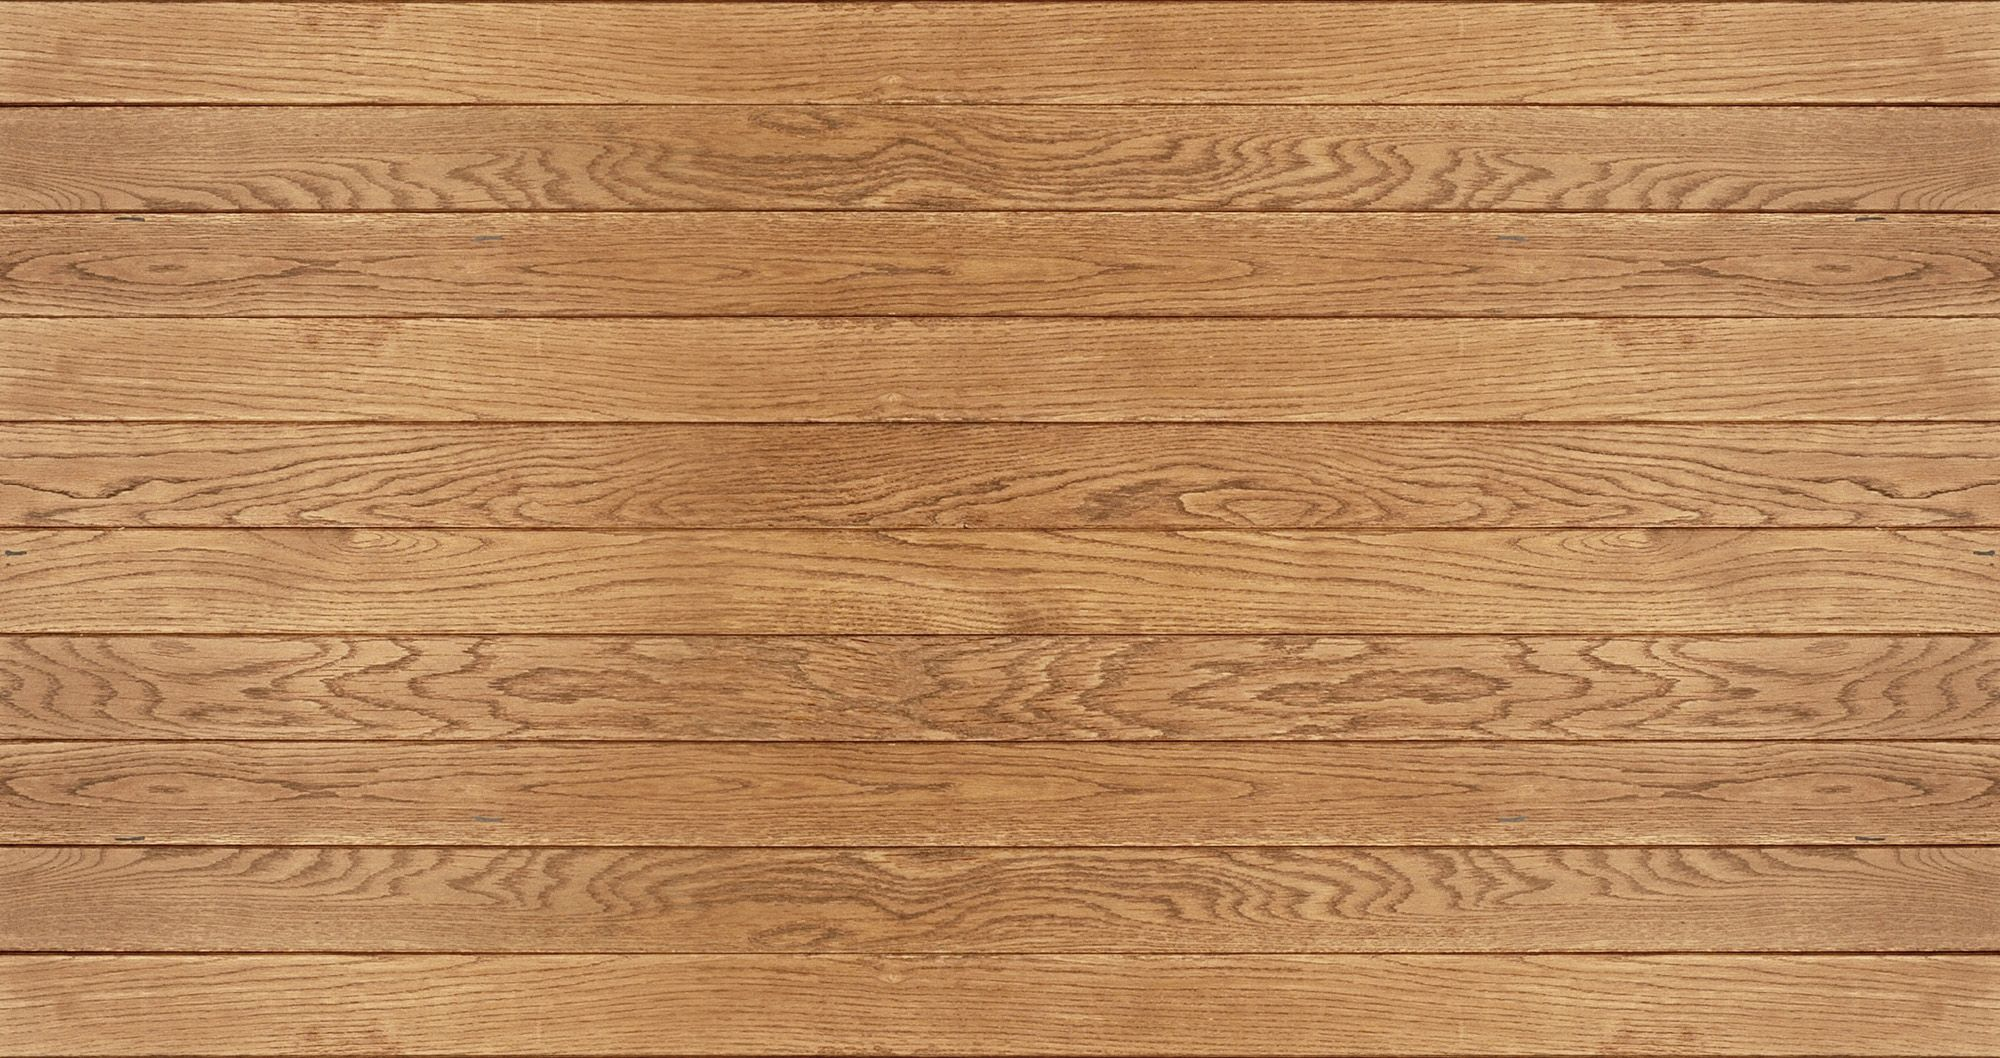 Tileable Wood Plank Texture Dark wood plan seamless ...